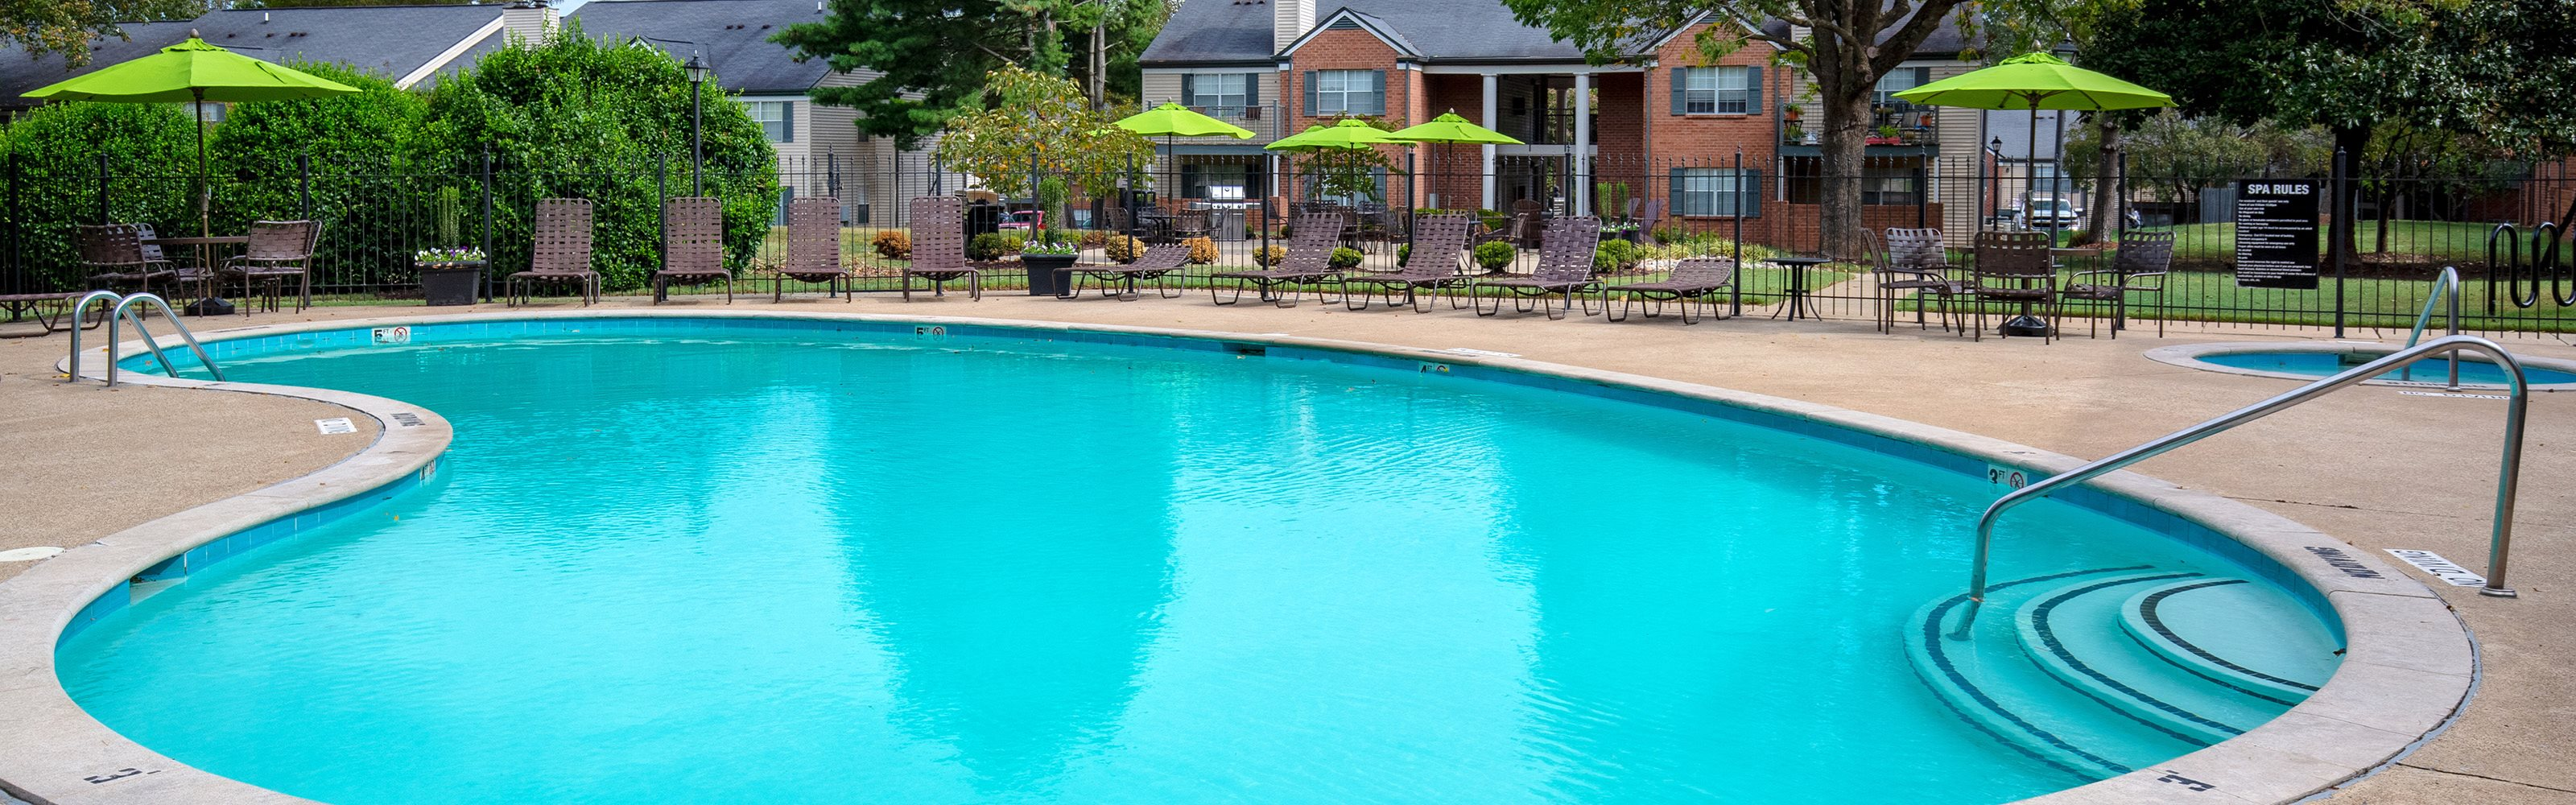 Littlestone of Village Green Apartments - Banner photo of pool